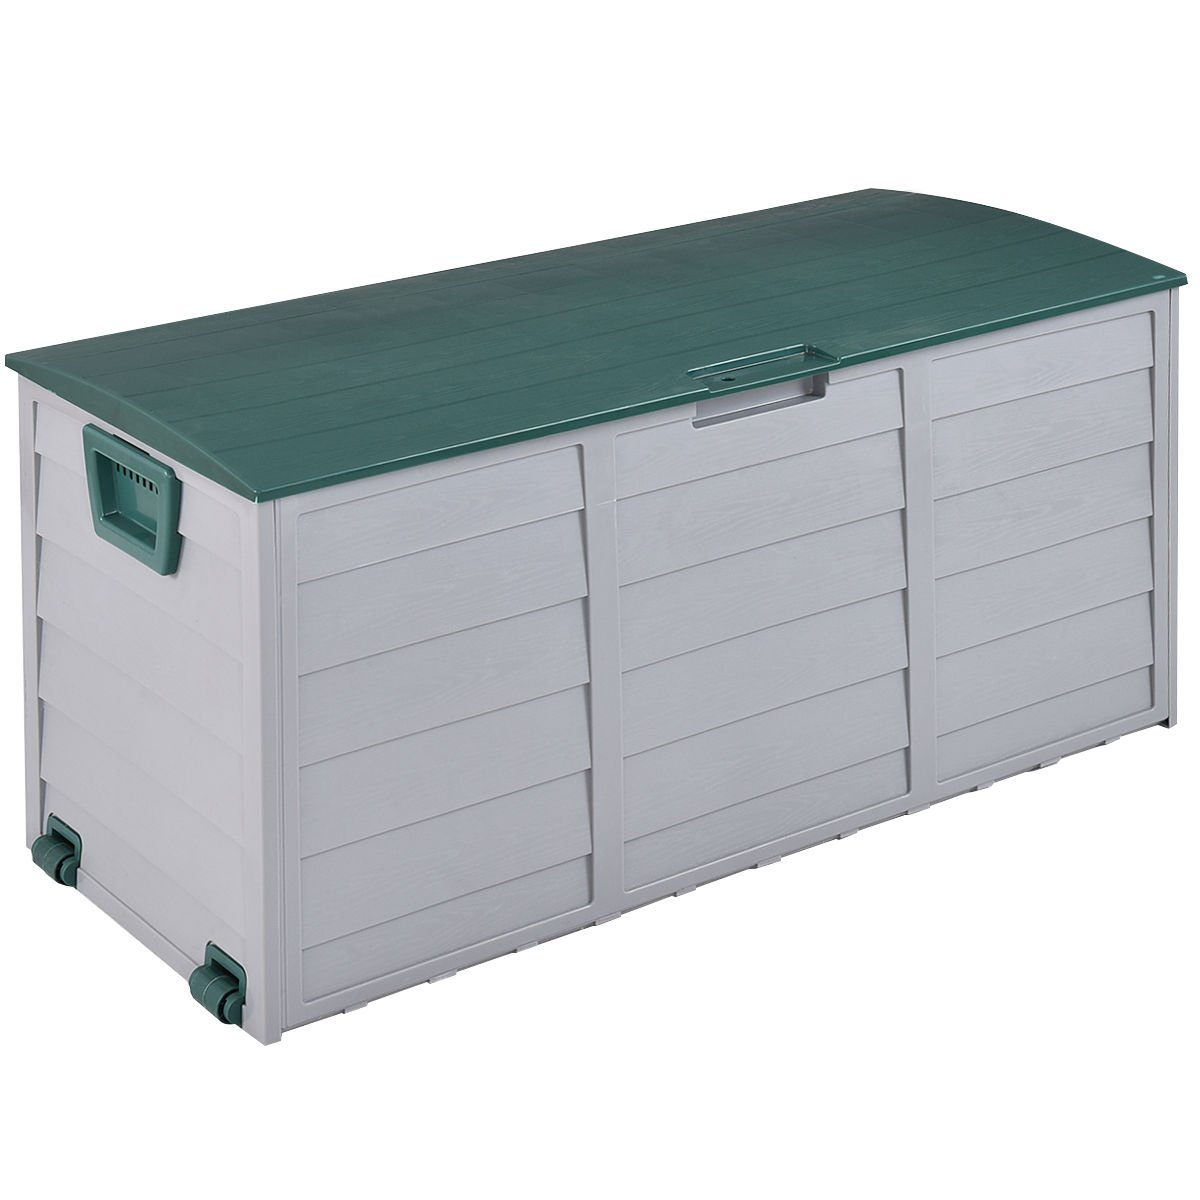 Deck Storage Box Outdoor Patio Garage Shed Tool Bench Container 70 Gallon